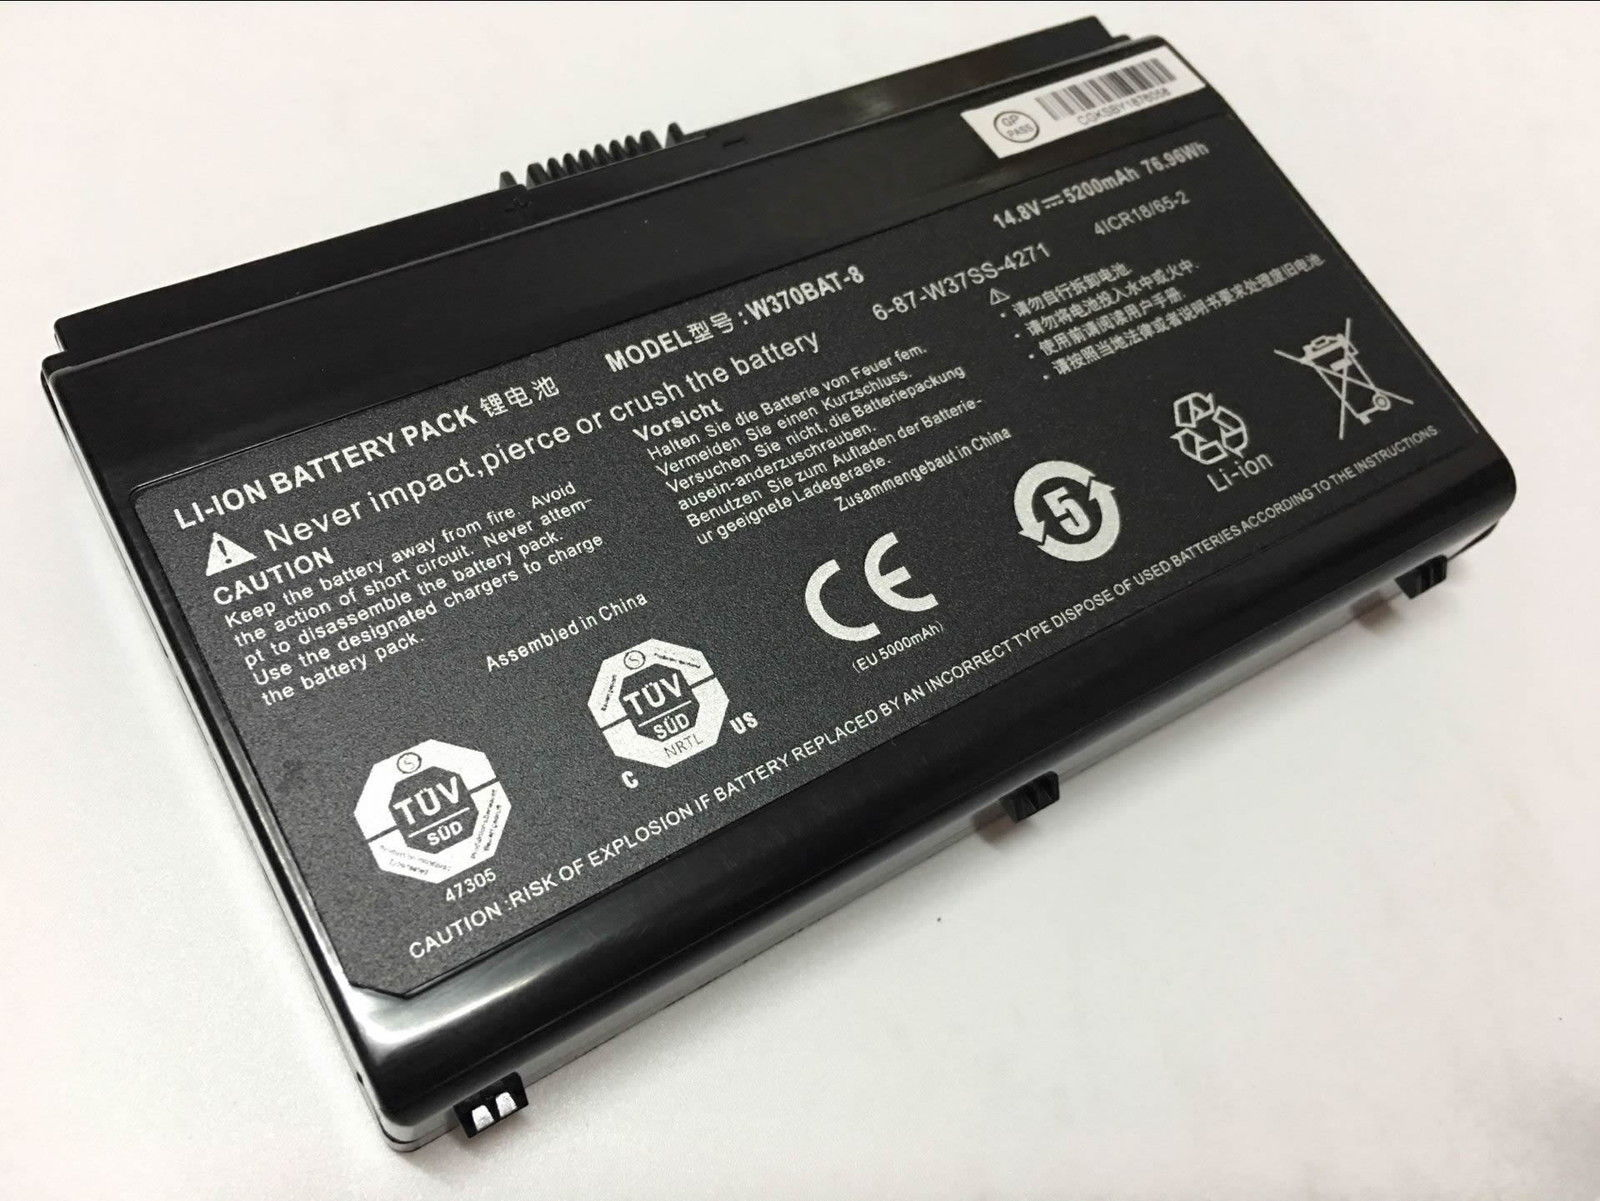 Clevo W350ET W355SS Schenker XMG A503 A522 A523 Gigabyte P2742 batteria compatibile